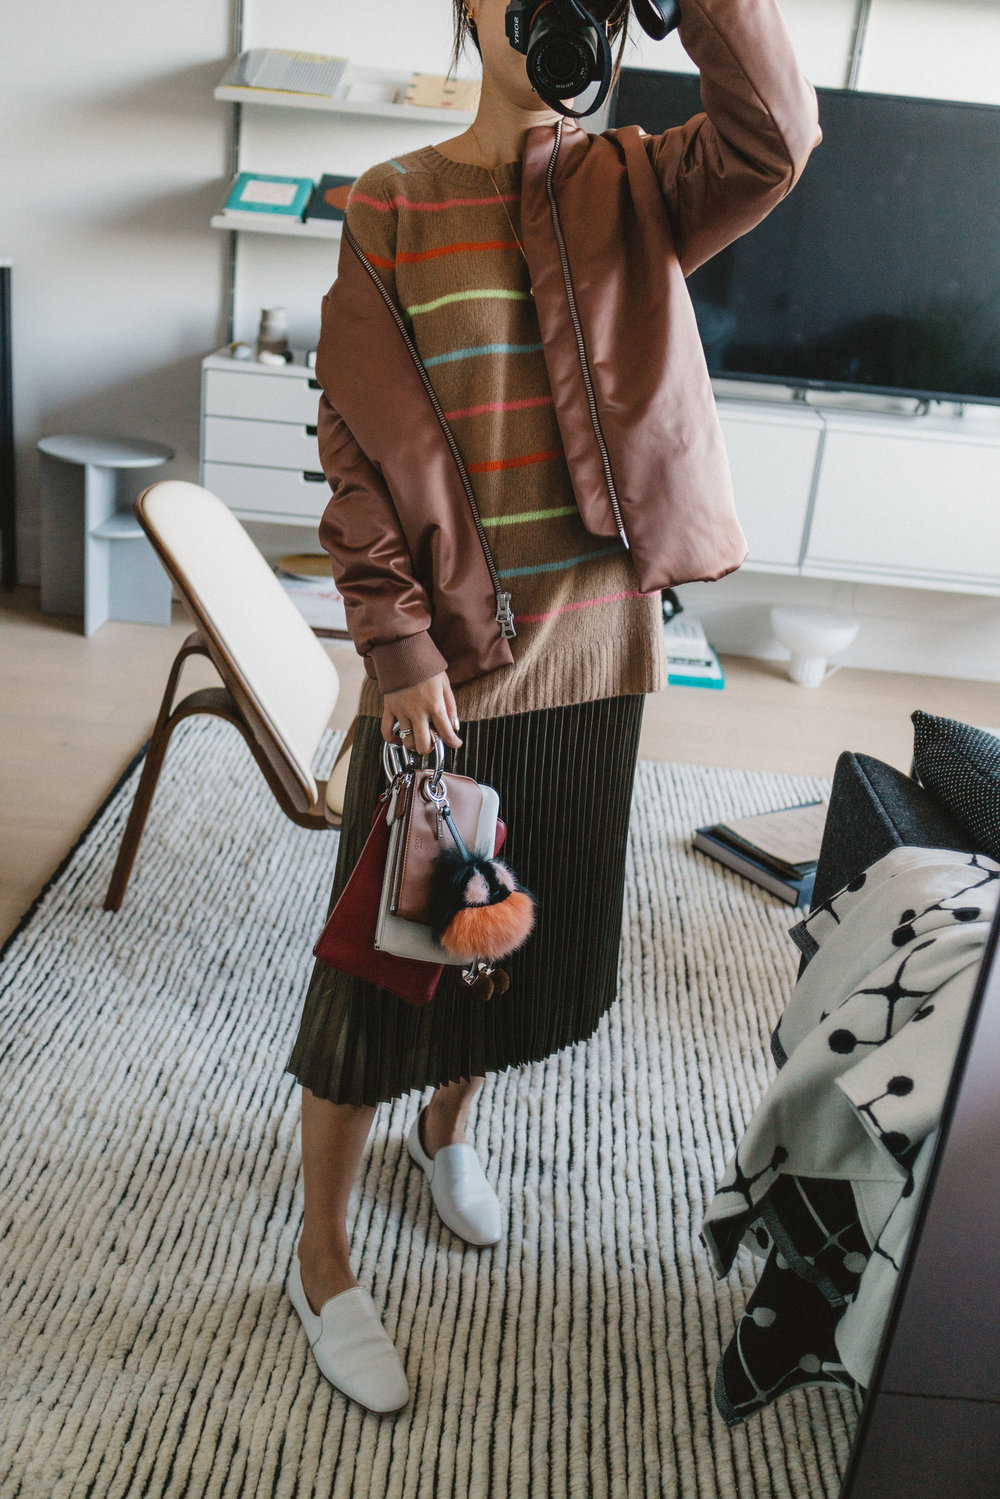 Acne Studios Jacket, Sies Marjan Sweater, Sezane Skirt, Fendi Bag and Keychain, The Row Shoes